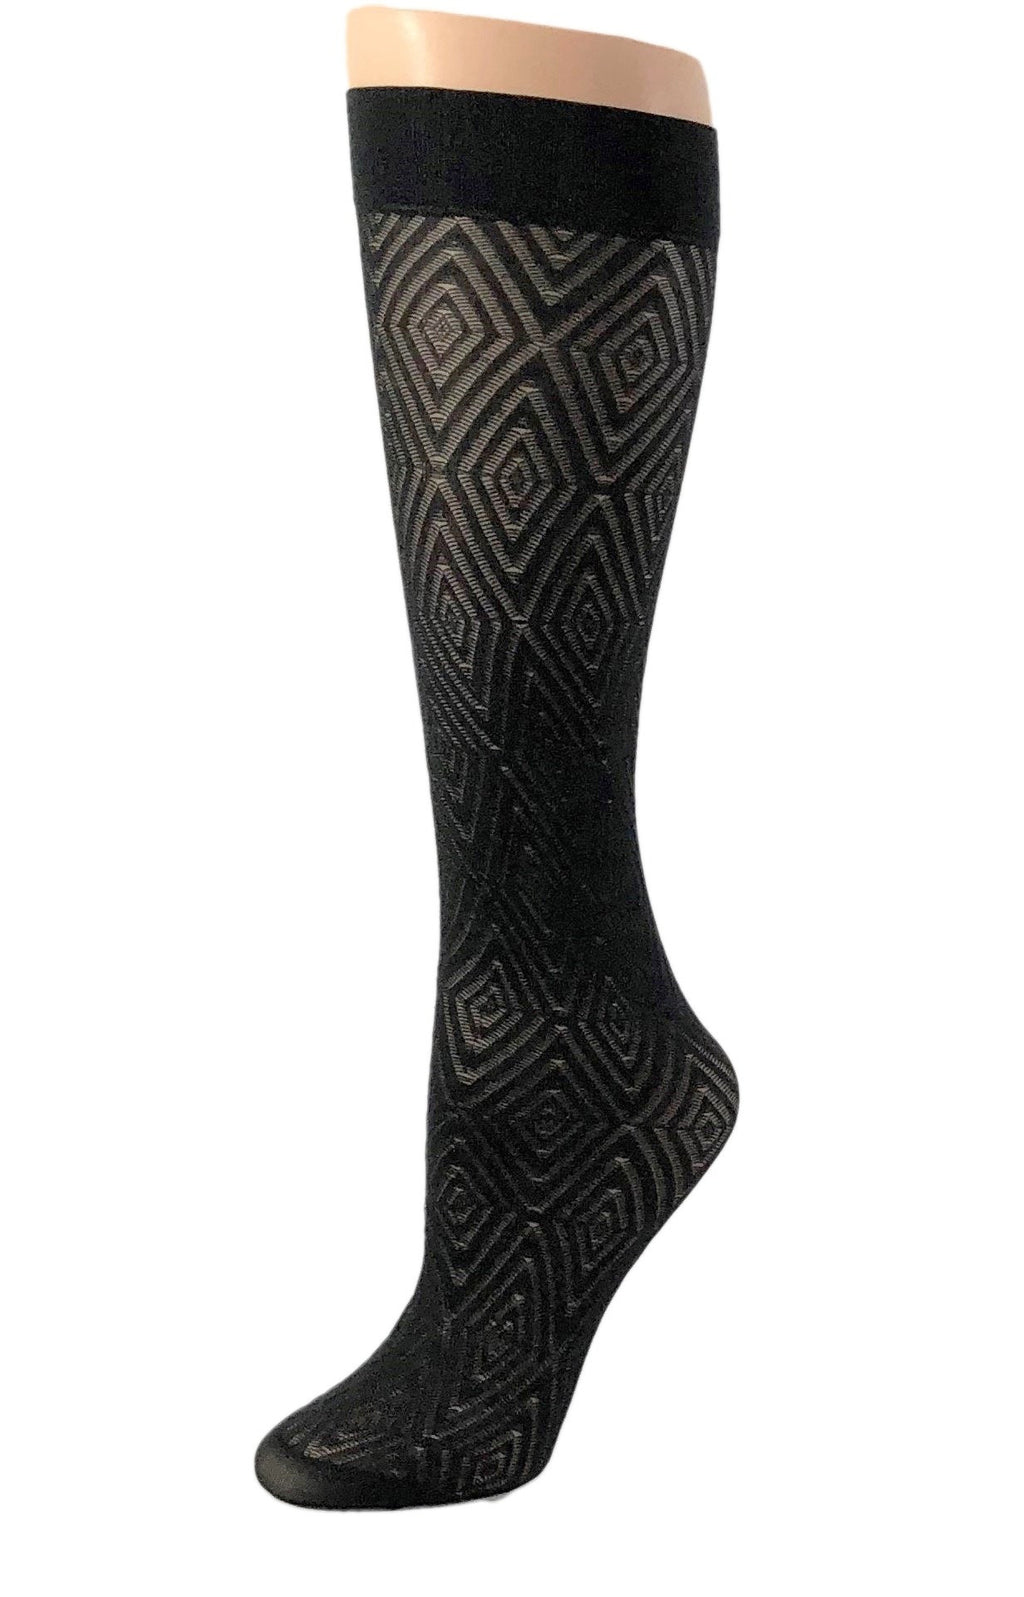 Gorgeous Diamond Patterned Socks - Global Trendz Fashion®